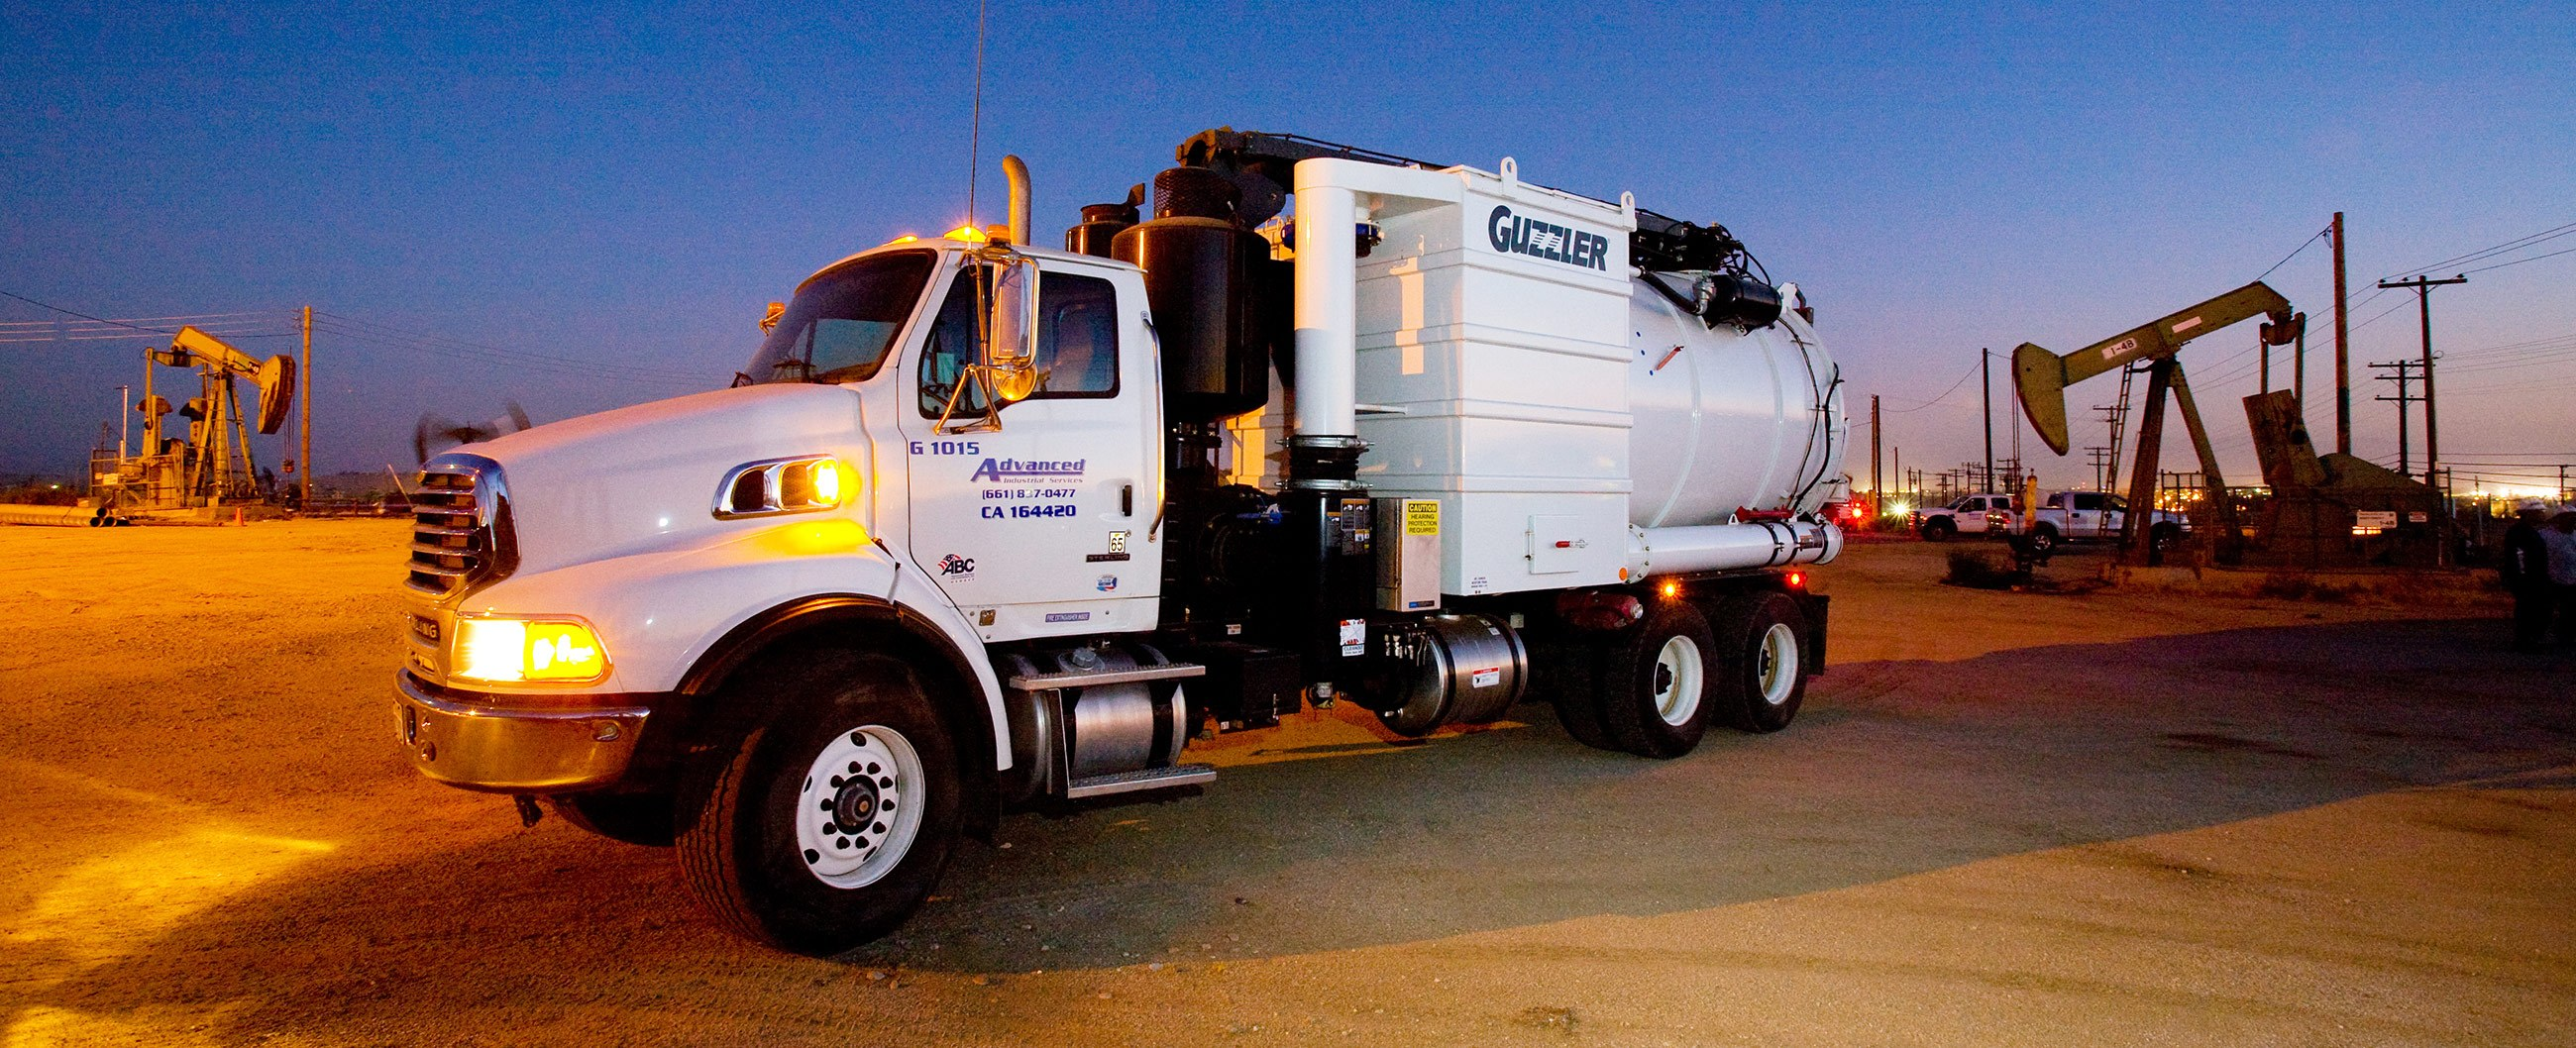 Oilfield Services - Advanced Industrial Services